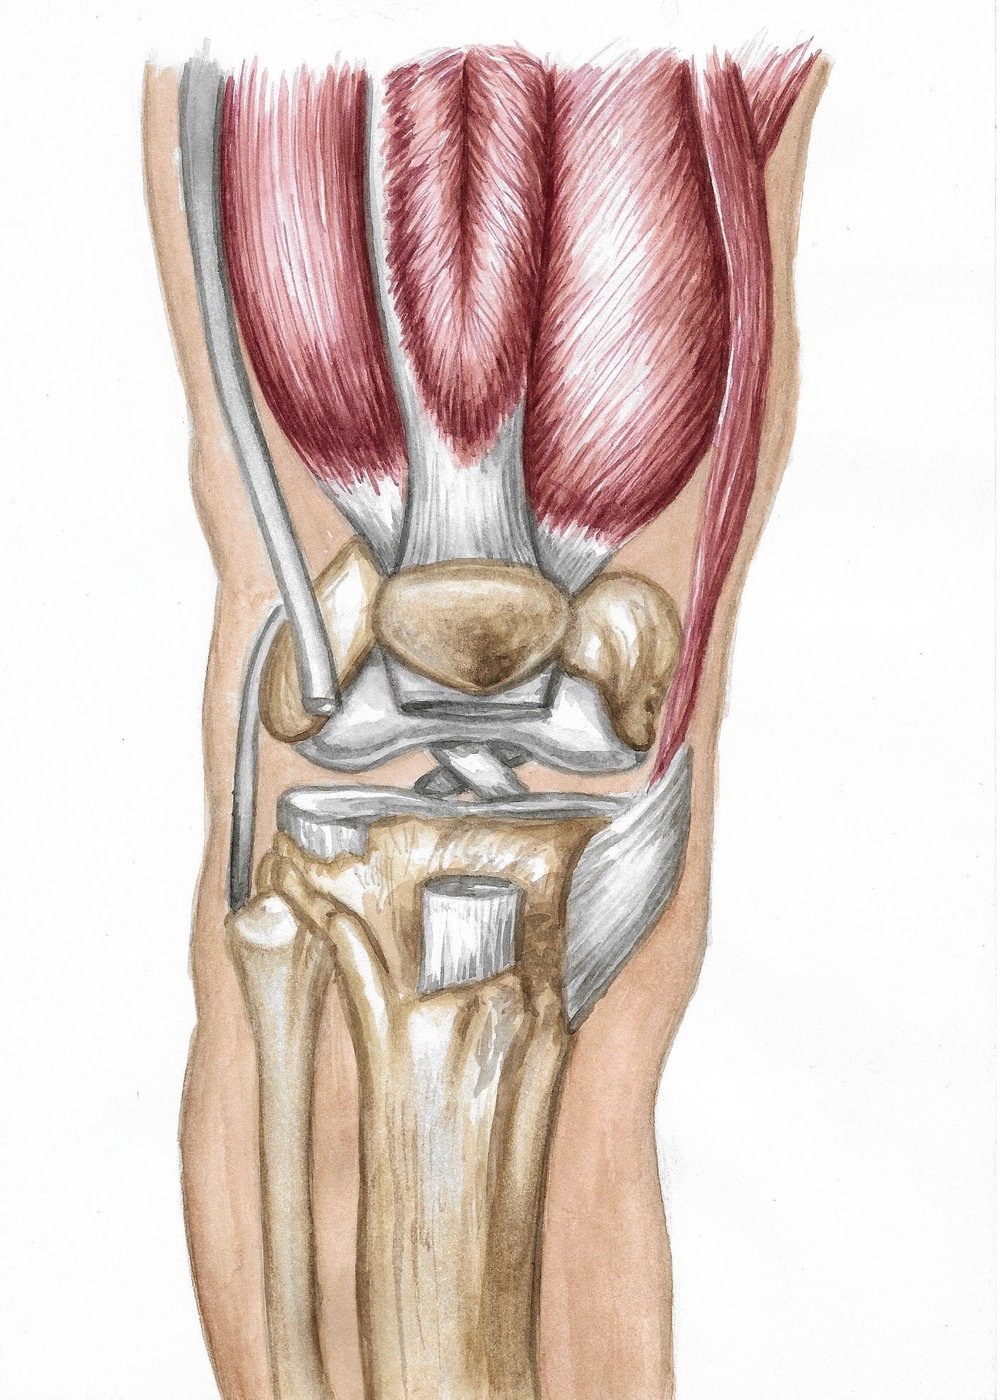 "Medical illustration of knee joint. Watercolor and pencil on Canson mixed media paper. 10x7.""  2018."